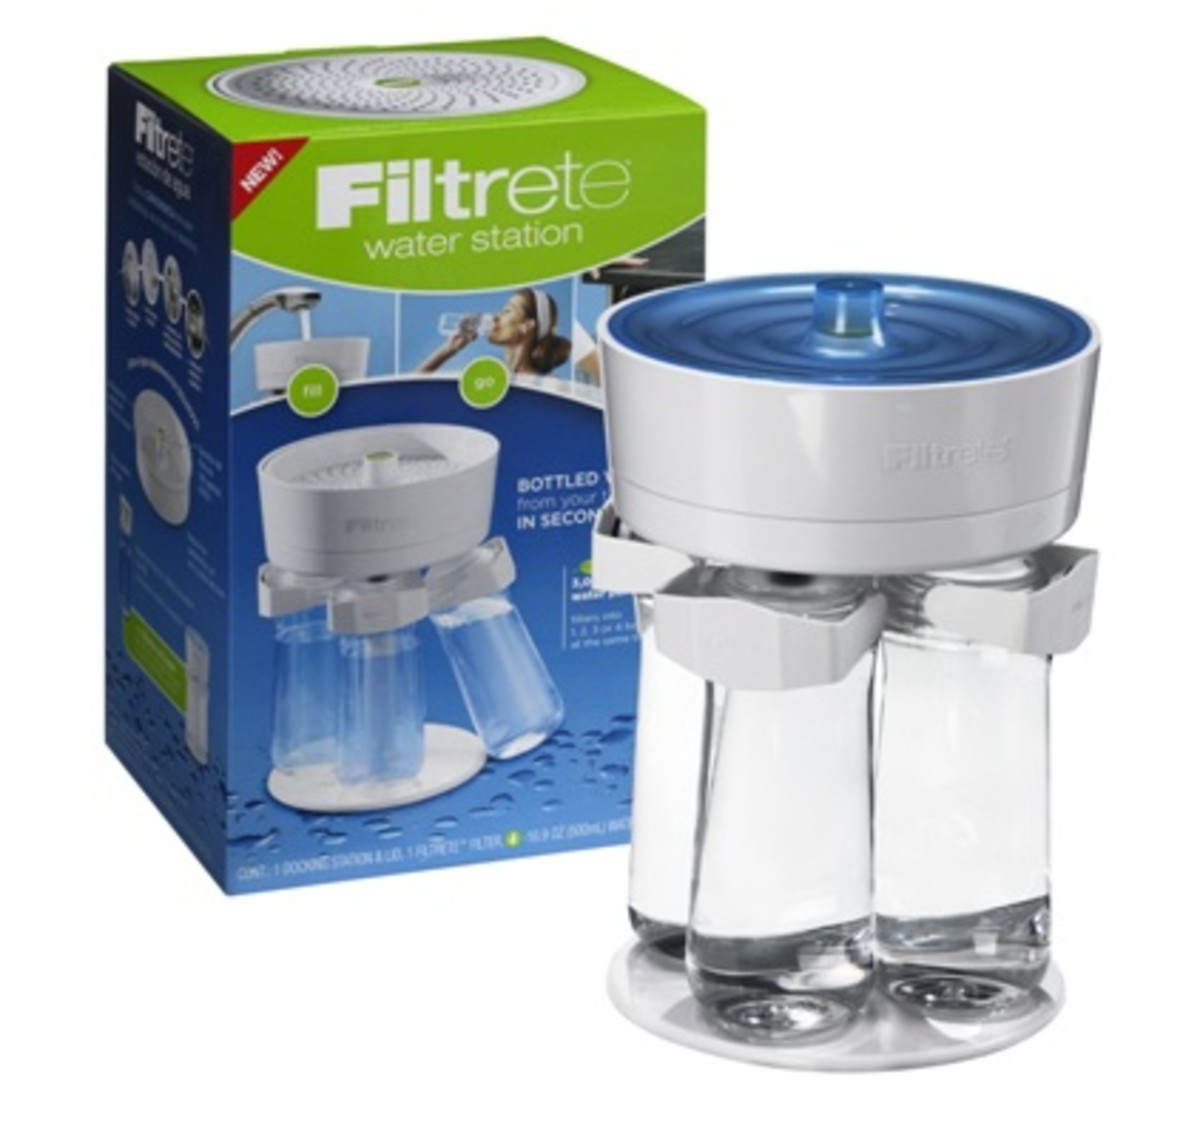 Filtrete Water Station from 3M